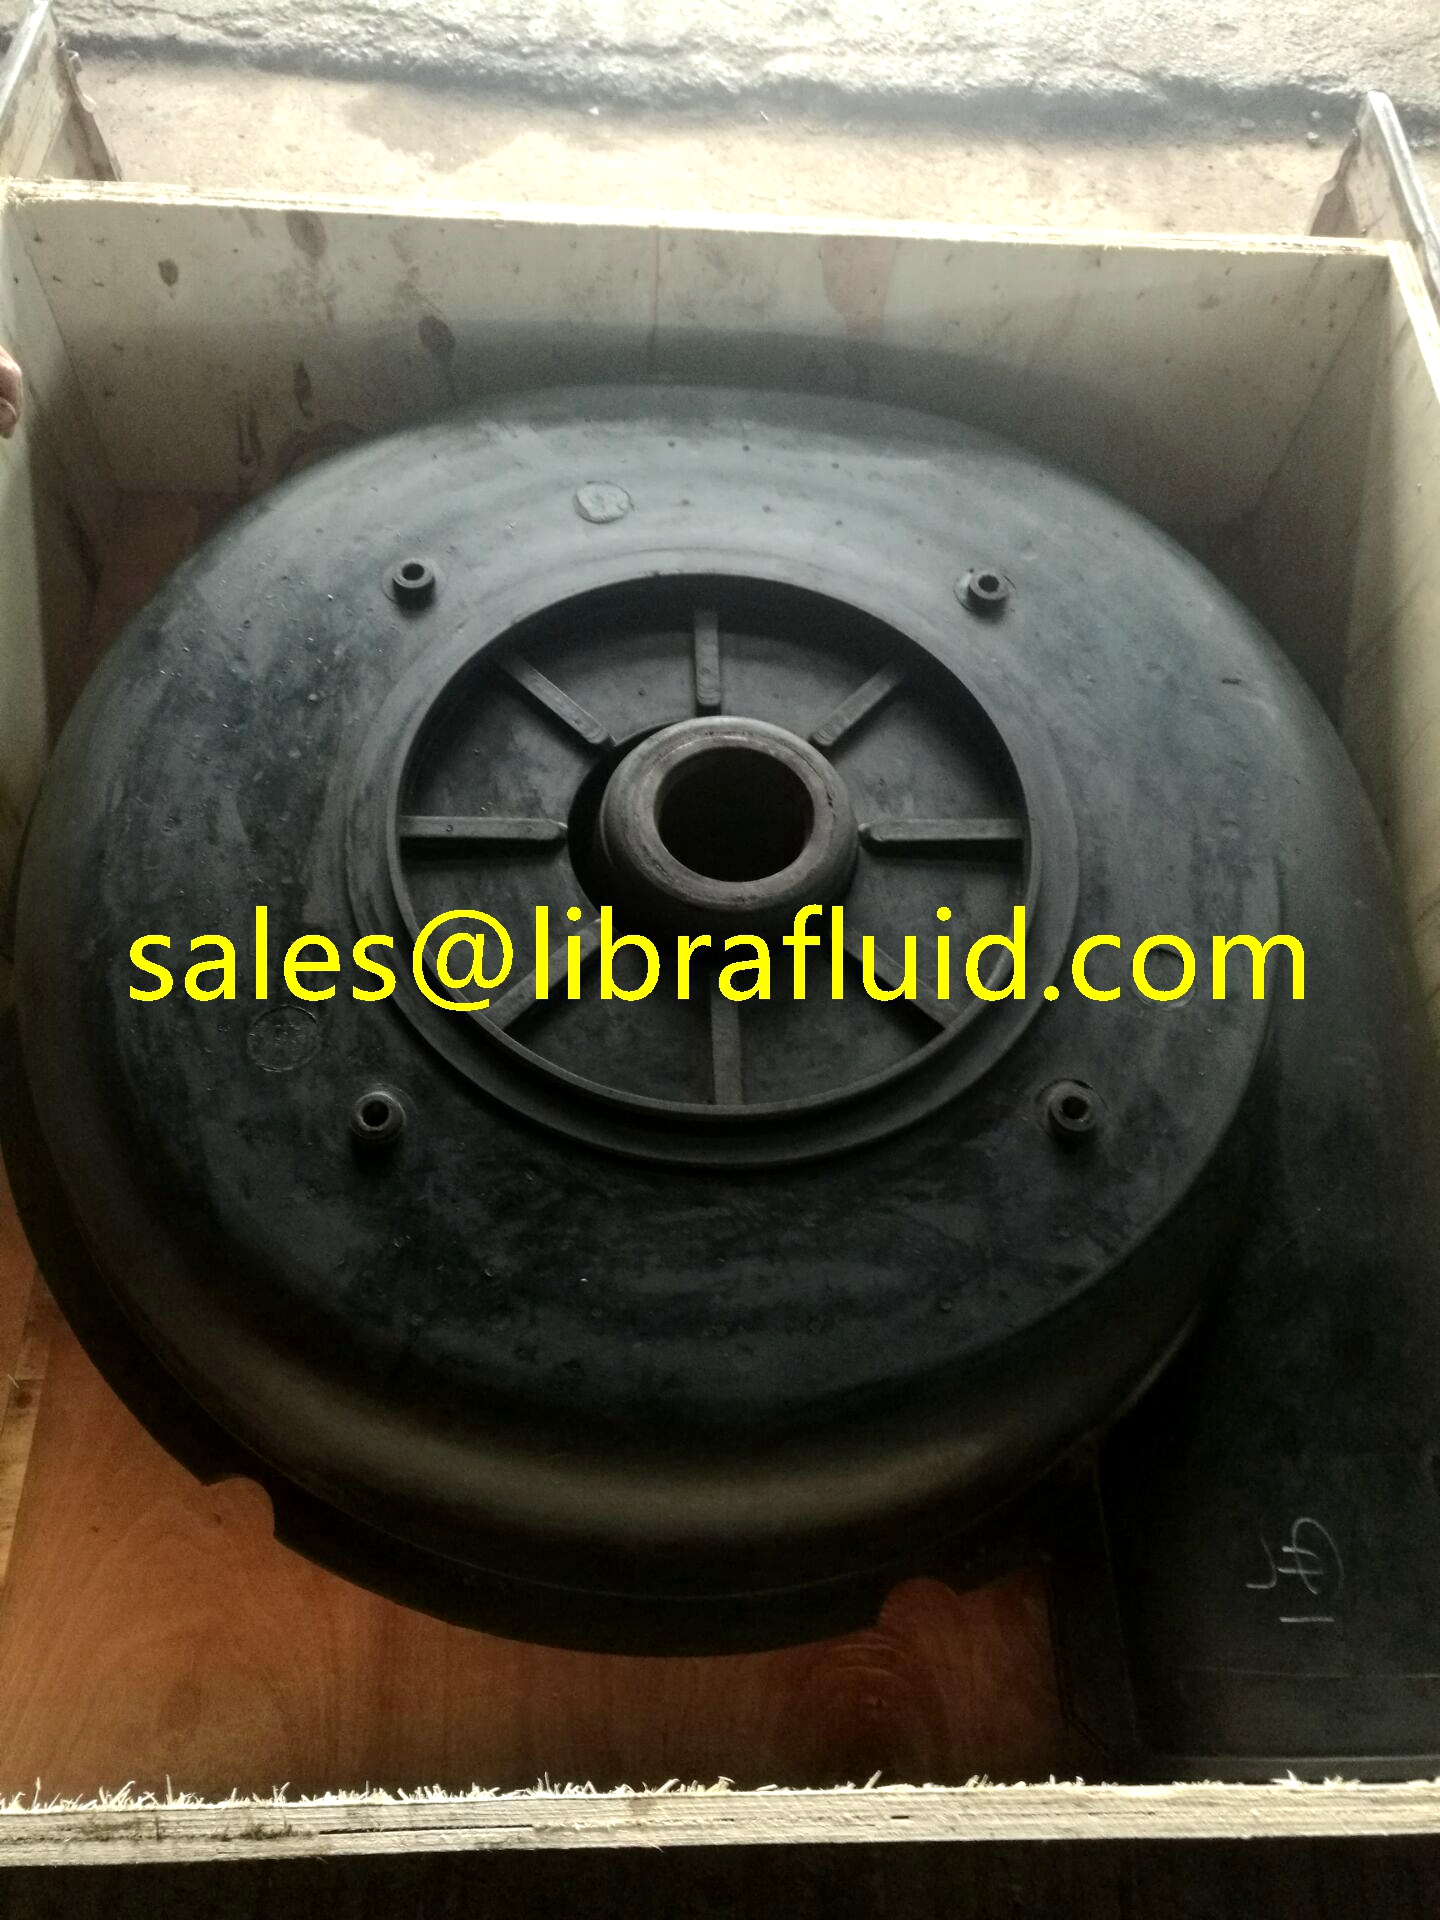 Hypalon impeller and liner to replace 12/10ST-AH Slurry pump